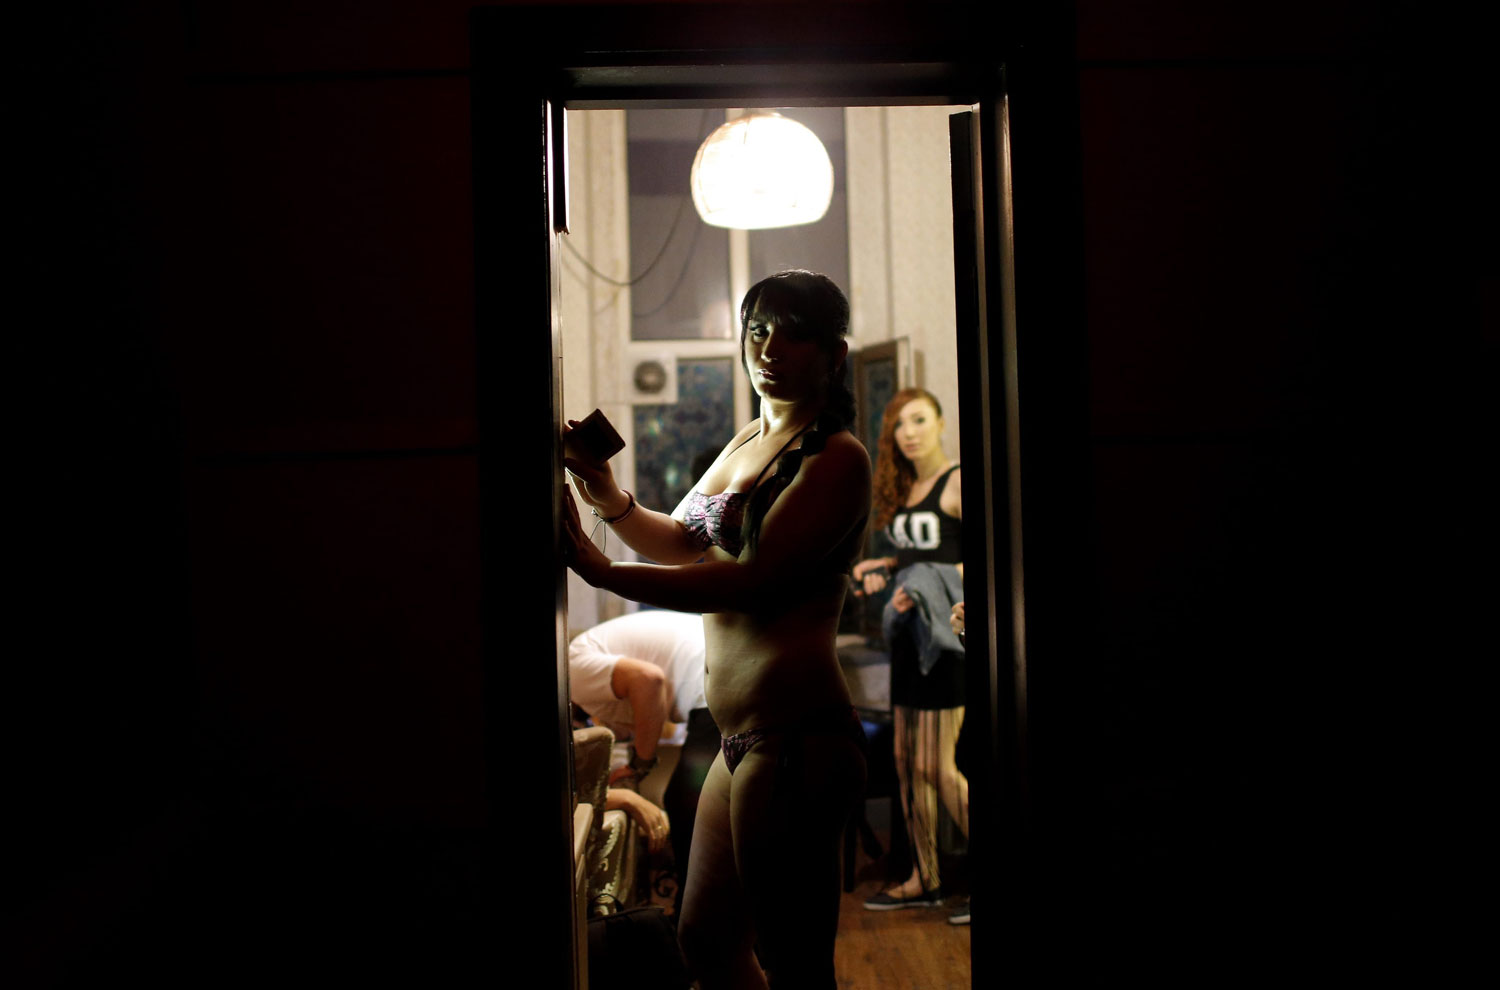 A contestant waits backstage in Istanbul on June 21, 2014. Many Turkish transsexuals are forced into becoming sex workers once their sexuality is exposed to their communities.